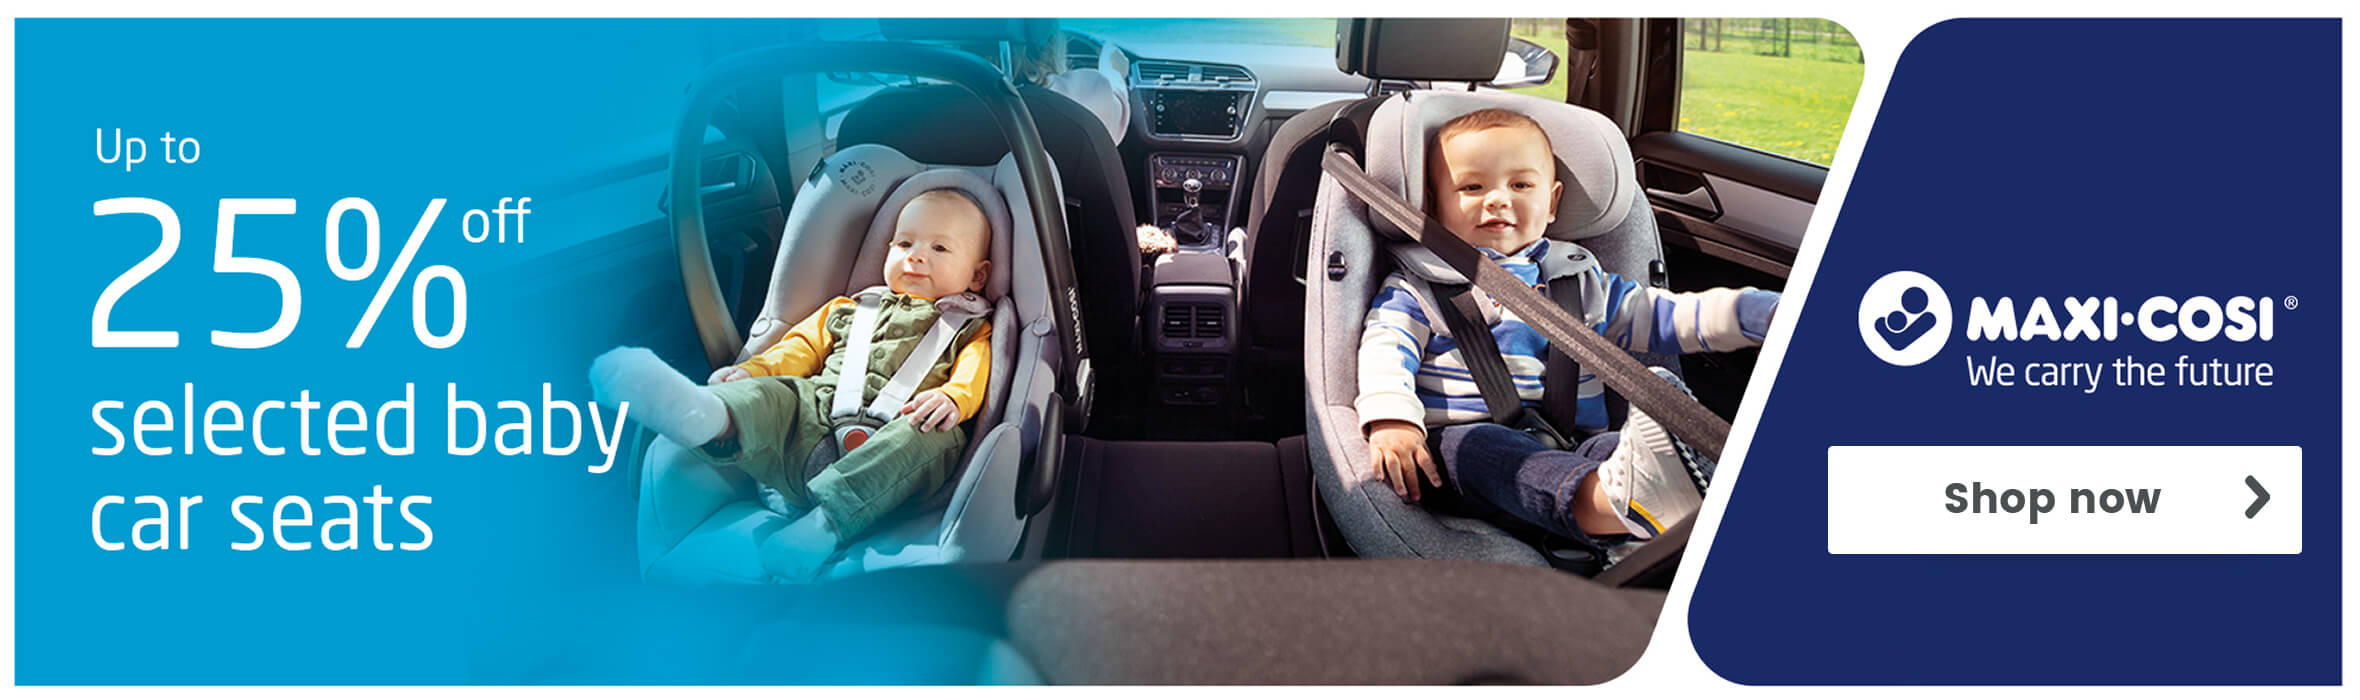 Up to 25% off Selected Maxi-Cosi Baby Car Seats